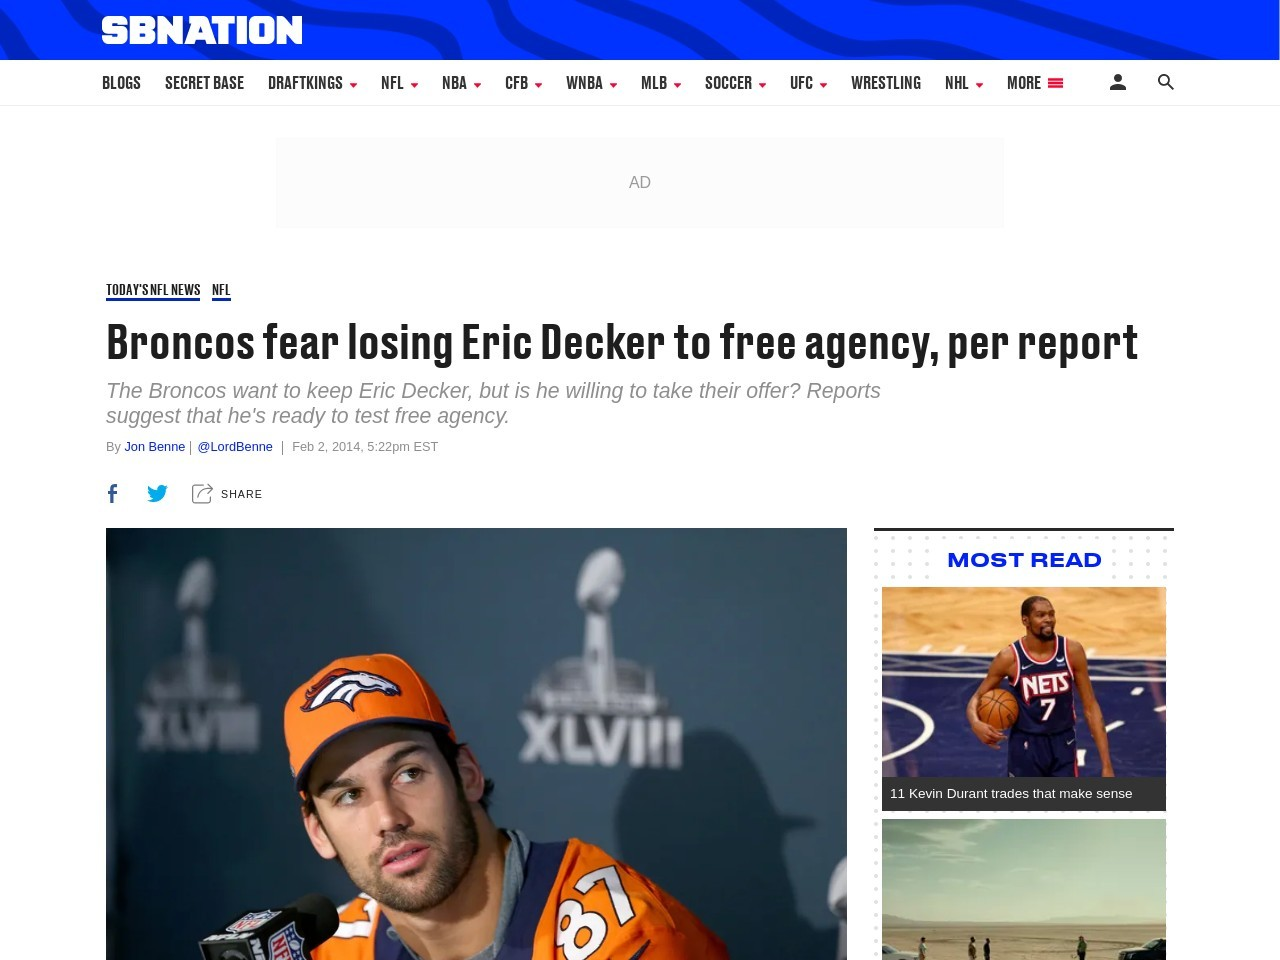 Broncos fear losing Eric Decker to free agency, per report – SB Nation